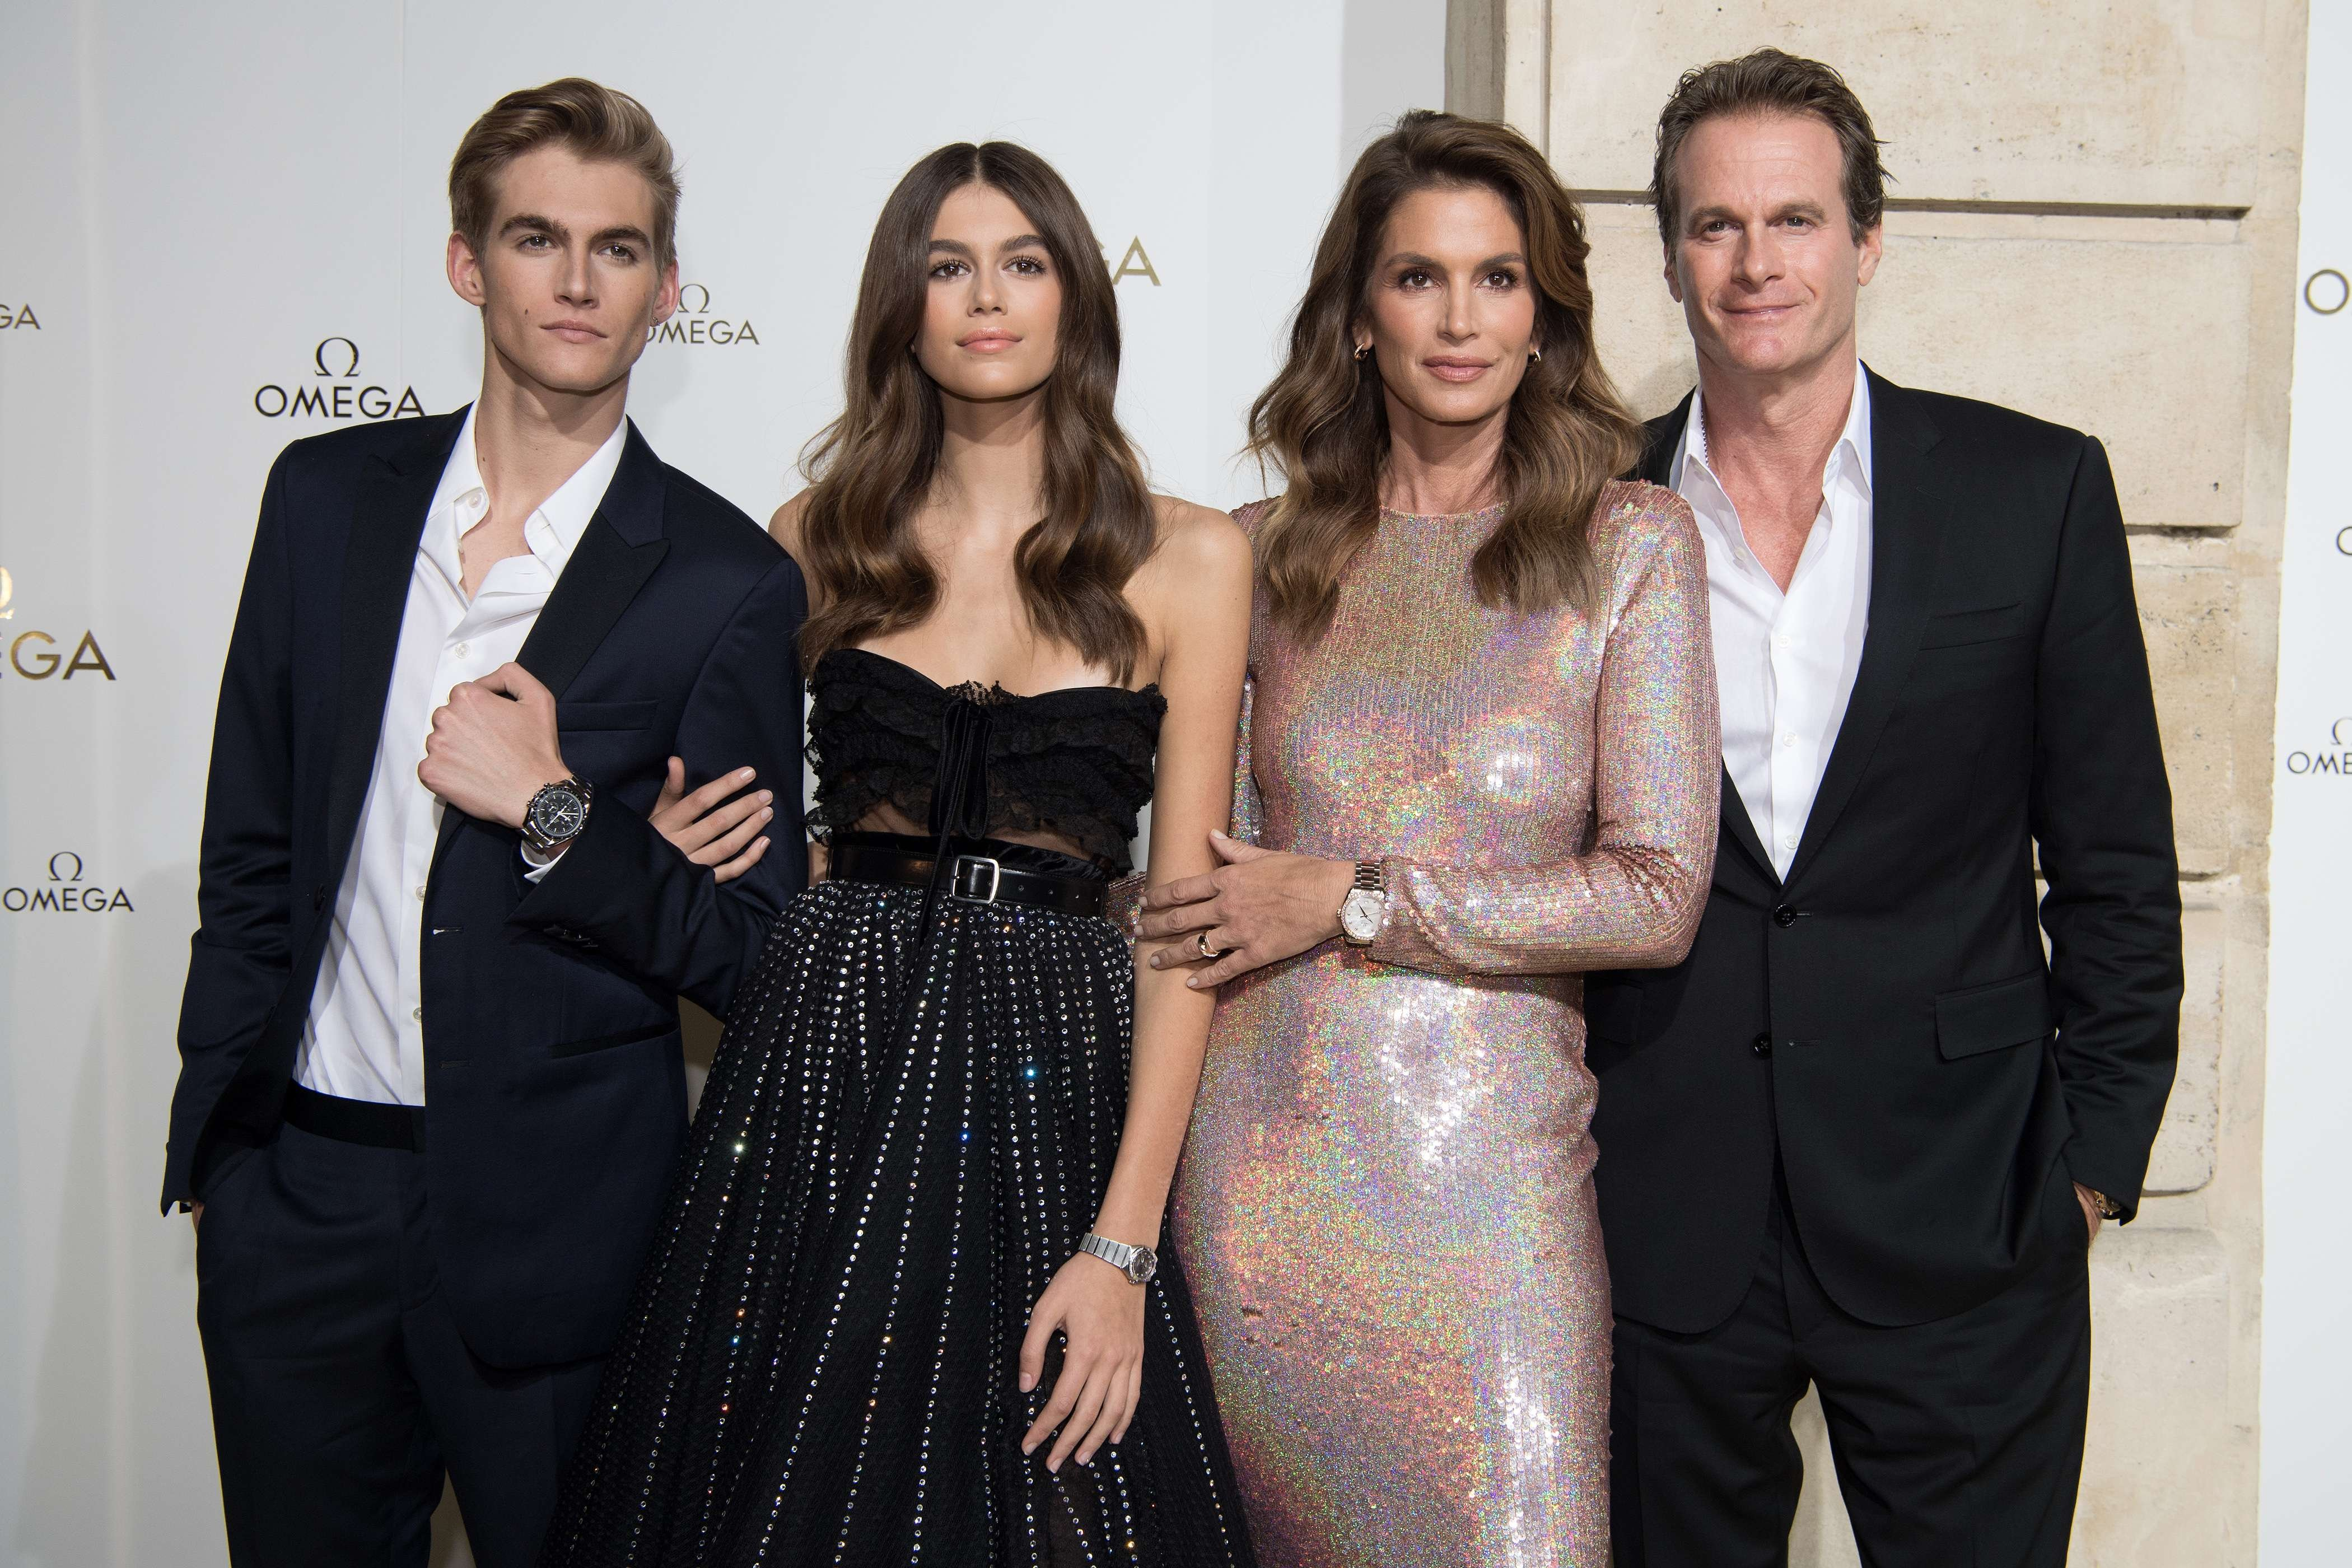 Presley Gerber,Kaia Gerber,Cindy Crawford and Rande Gerber attend 'Her Time' Omega Photocall as part of the Paris Fashion Week Womenswear Spring/Summer 2018 on September 29, 2017 //NIVIERE_004NIV/Credit:David Niviere/SIPA/1709302000, Image: 351060169, License: Rights-managed, Restrictions: , Model Release: no, Credit line: Profimedia, TEMP Sipa Press